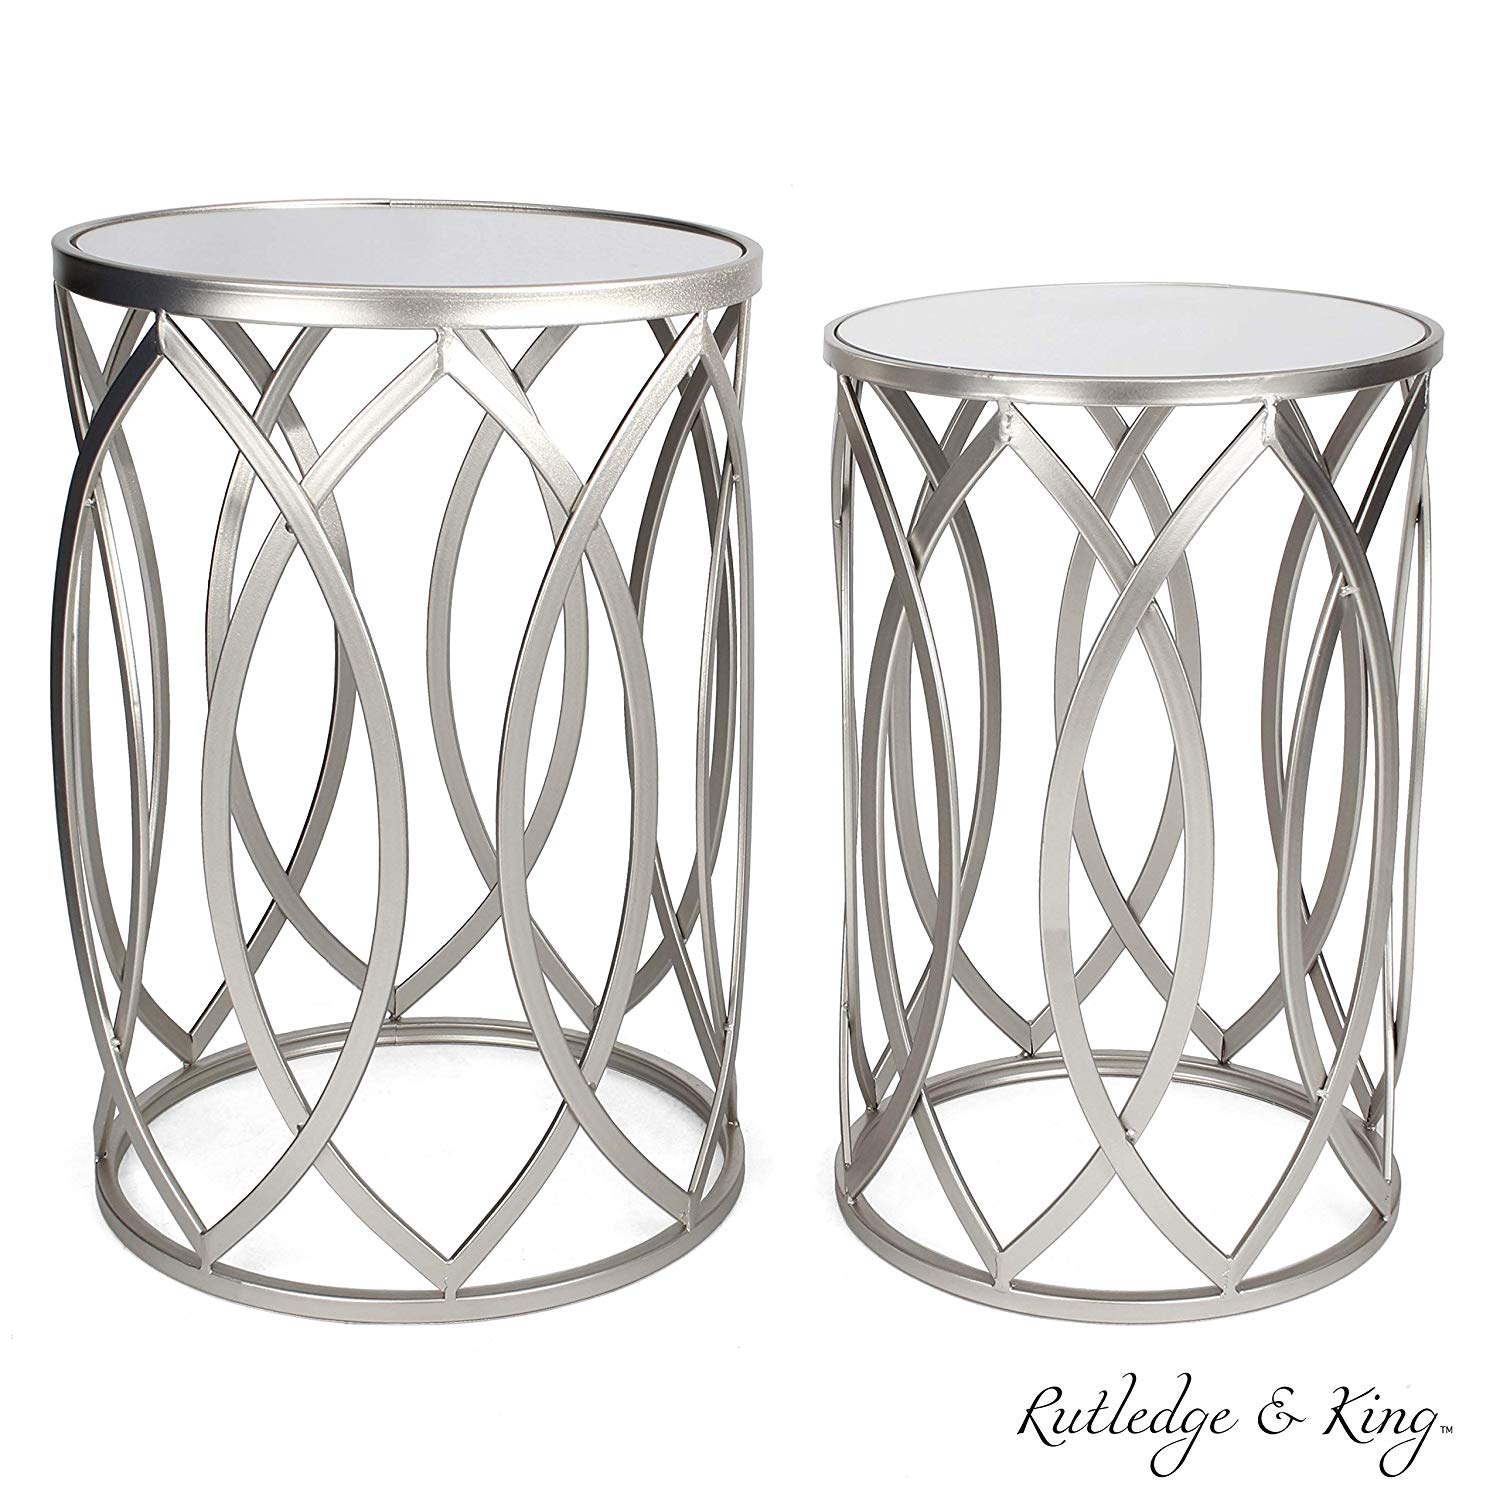 round end table set silver tables with mirrored unique small accent tops nesting and metal side rutledge king blufton oval coffee storage big chairs threshold rustic gold west elm